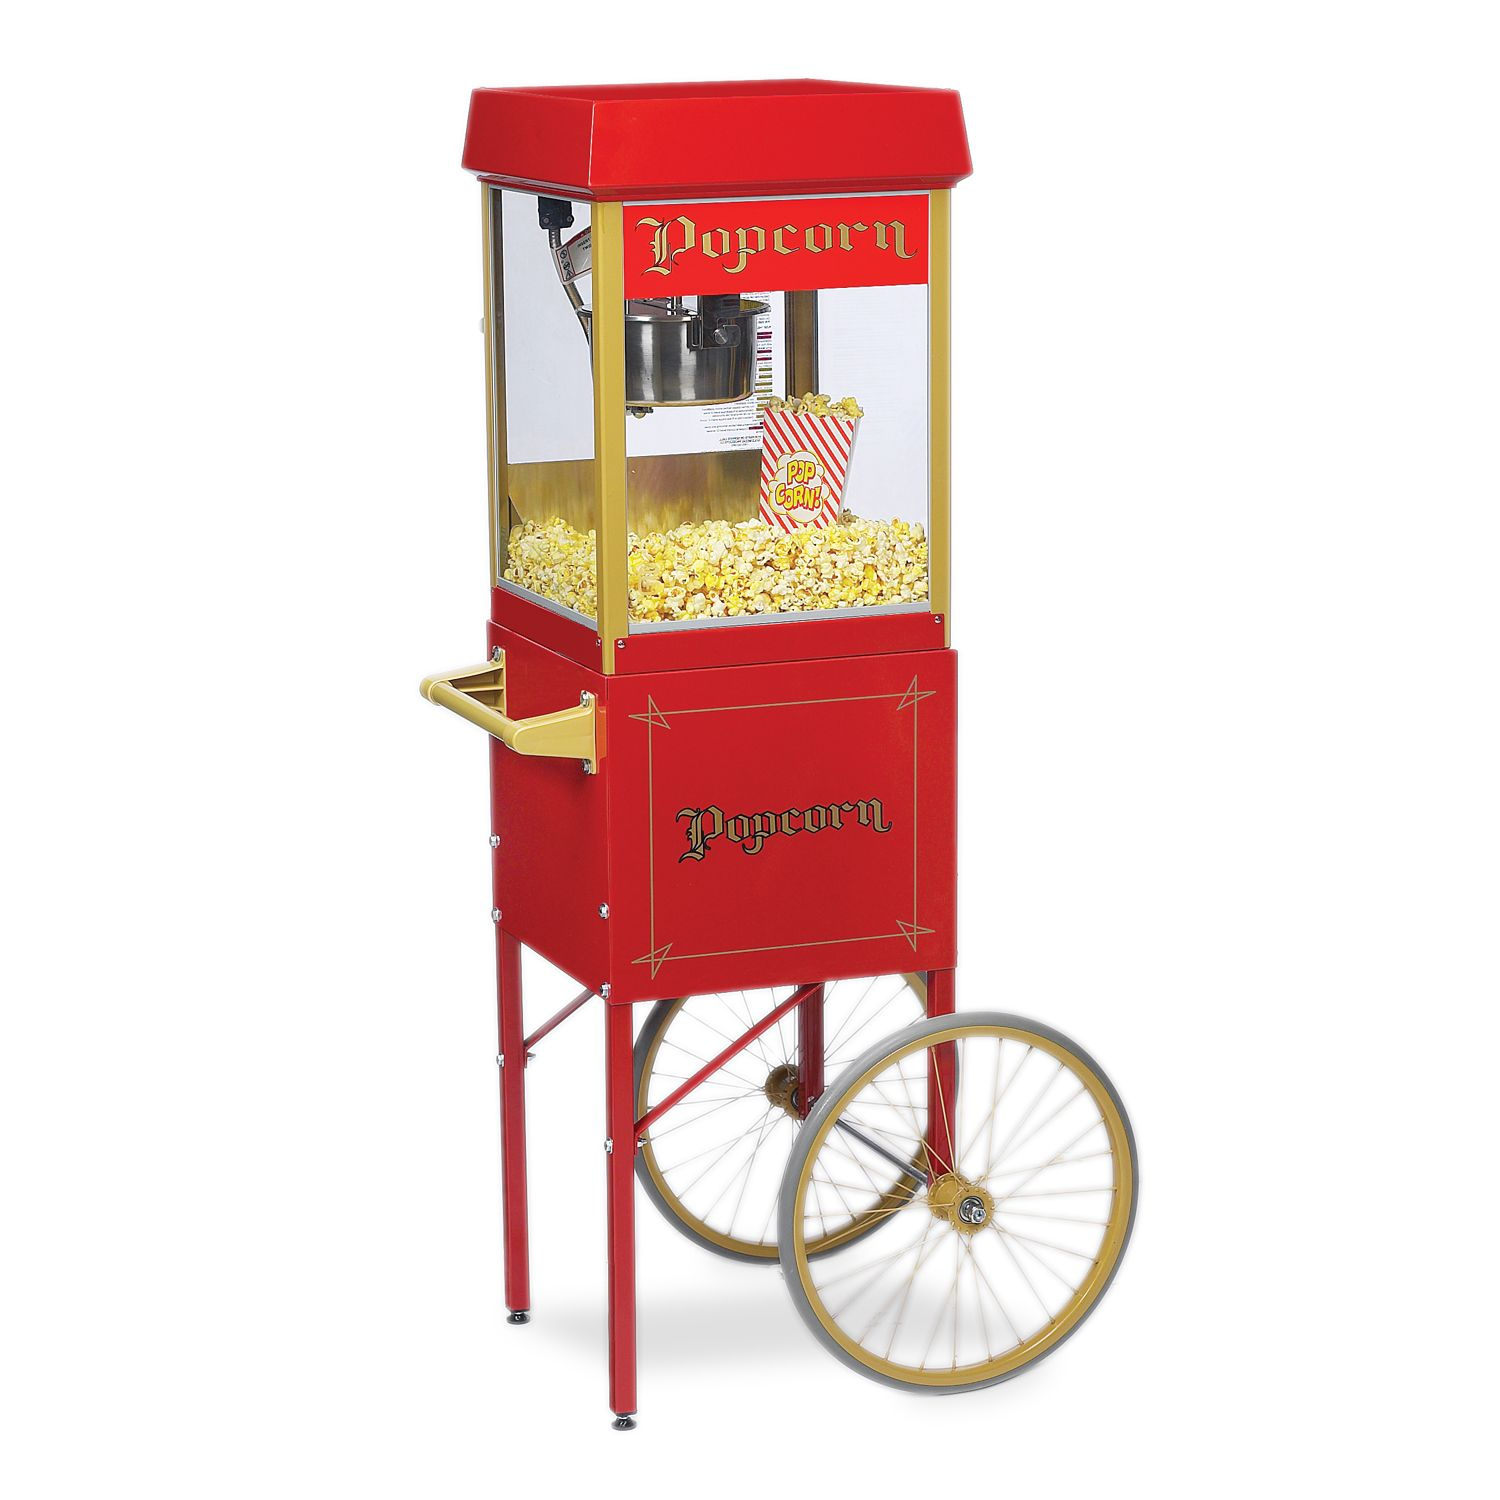 Popcorn Machine For Weddings And Parties From 5 Star Rental